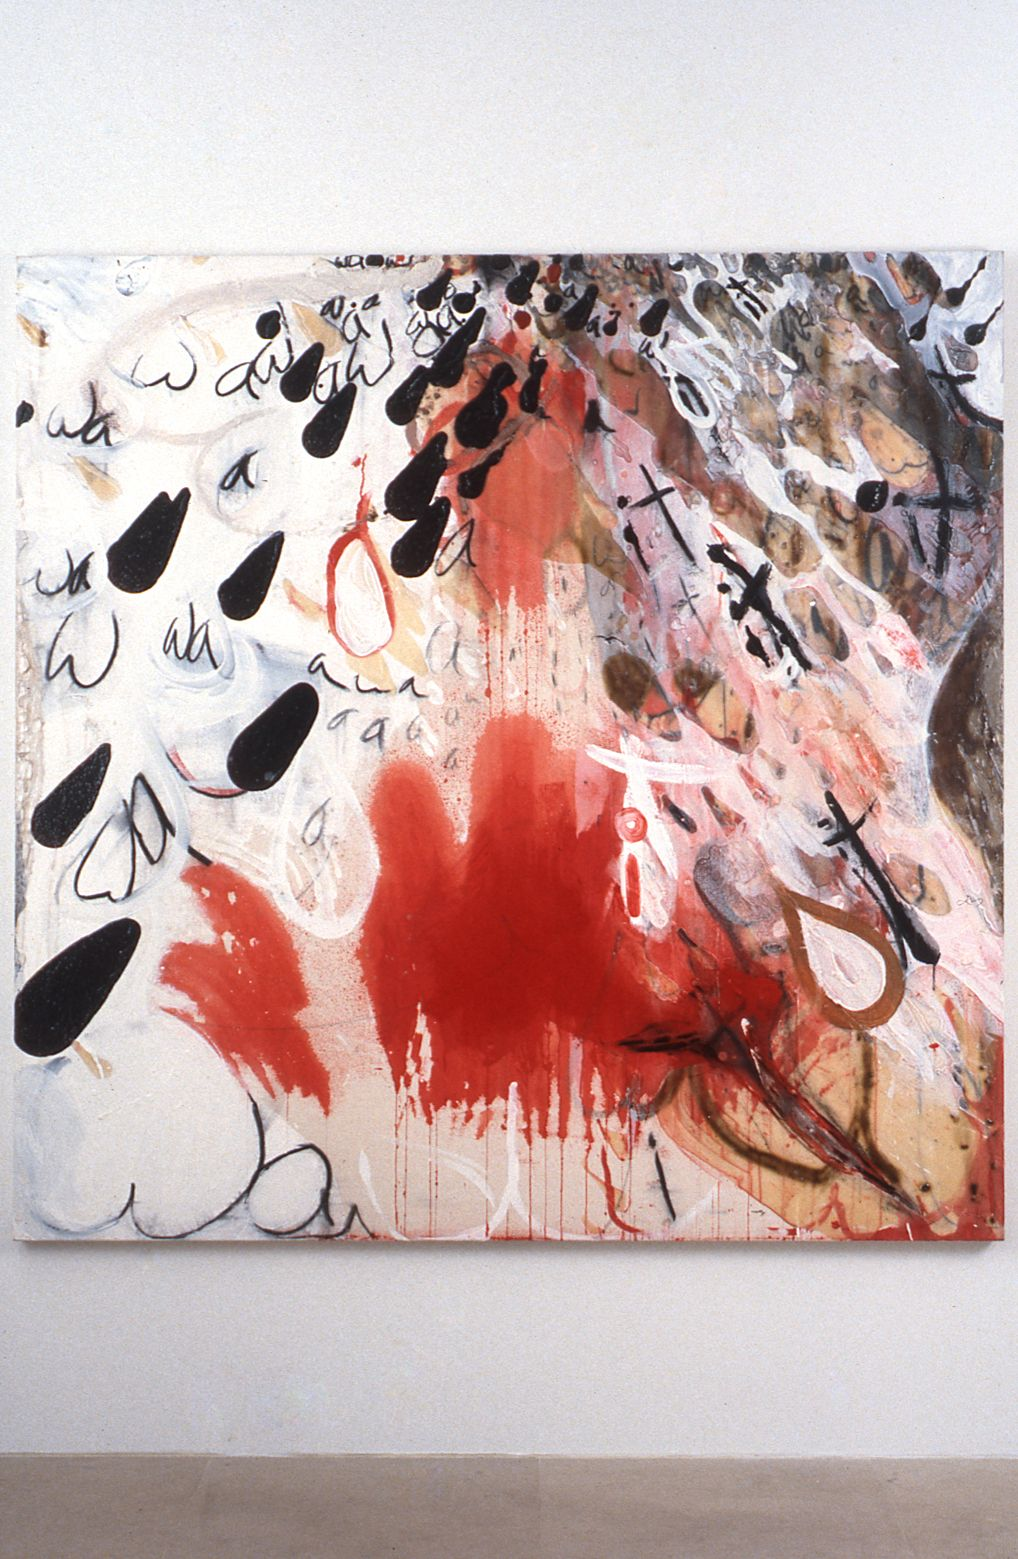 Suzanne McClelland, wait, 1991, acrylic, clay, charcoal, gesso on canvas, 72 x 72 inches